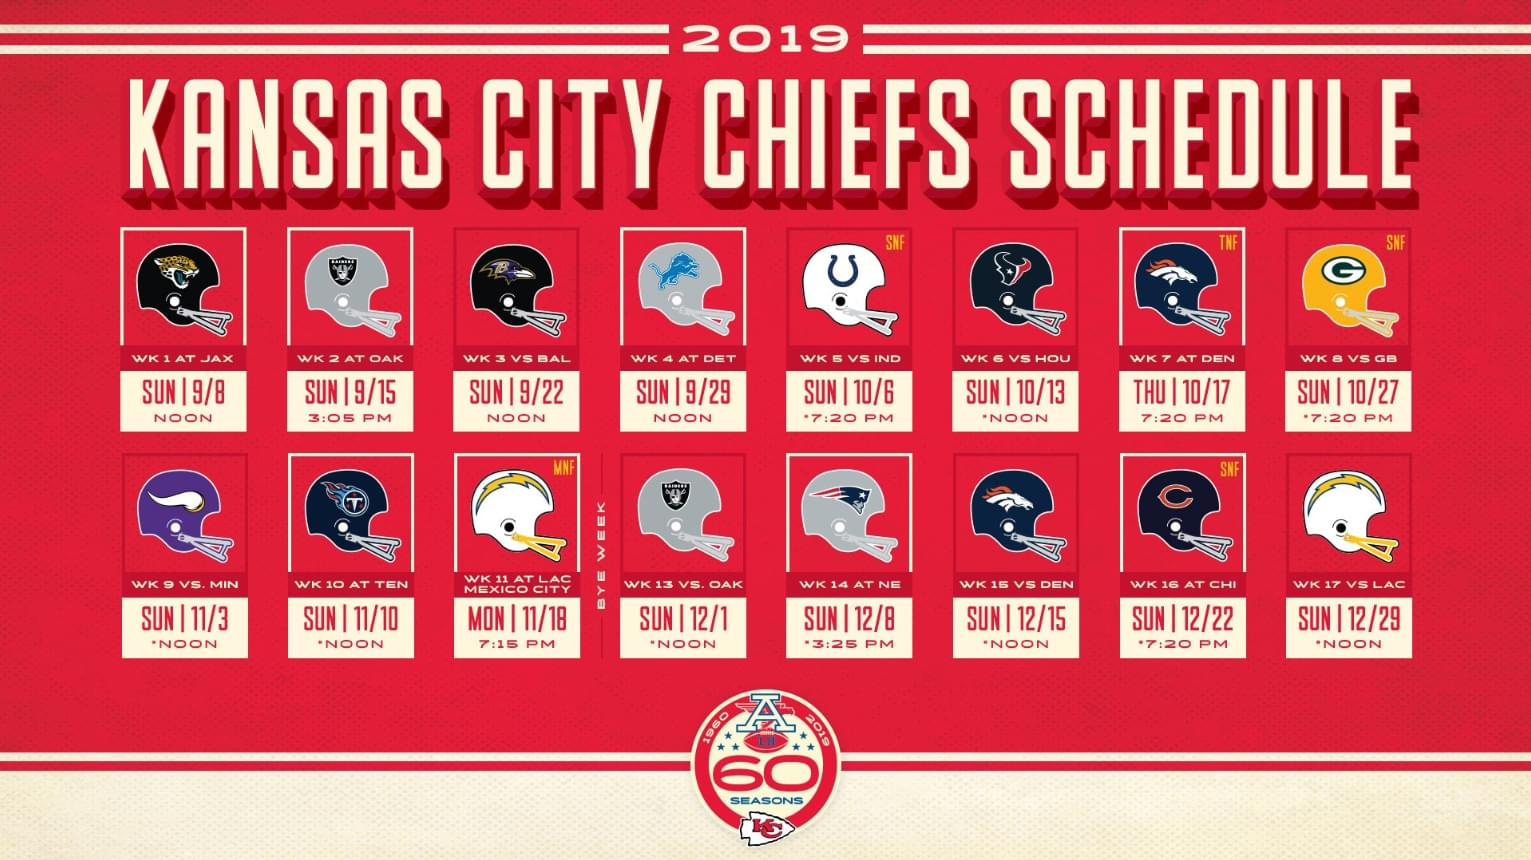 2019 Kc Chiefs Schedule 2019 Kansas City Chiefs Schedule | KCFX FM | 101 The Fox